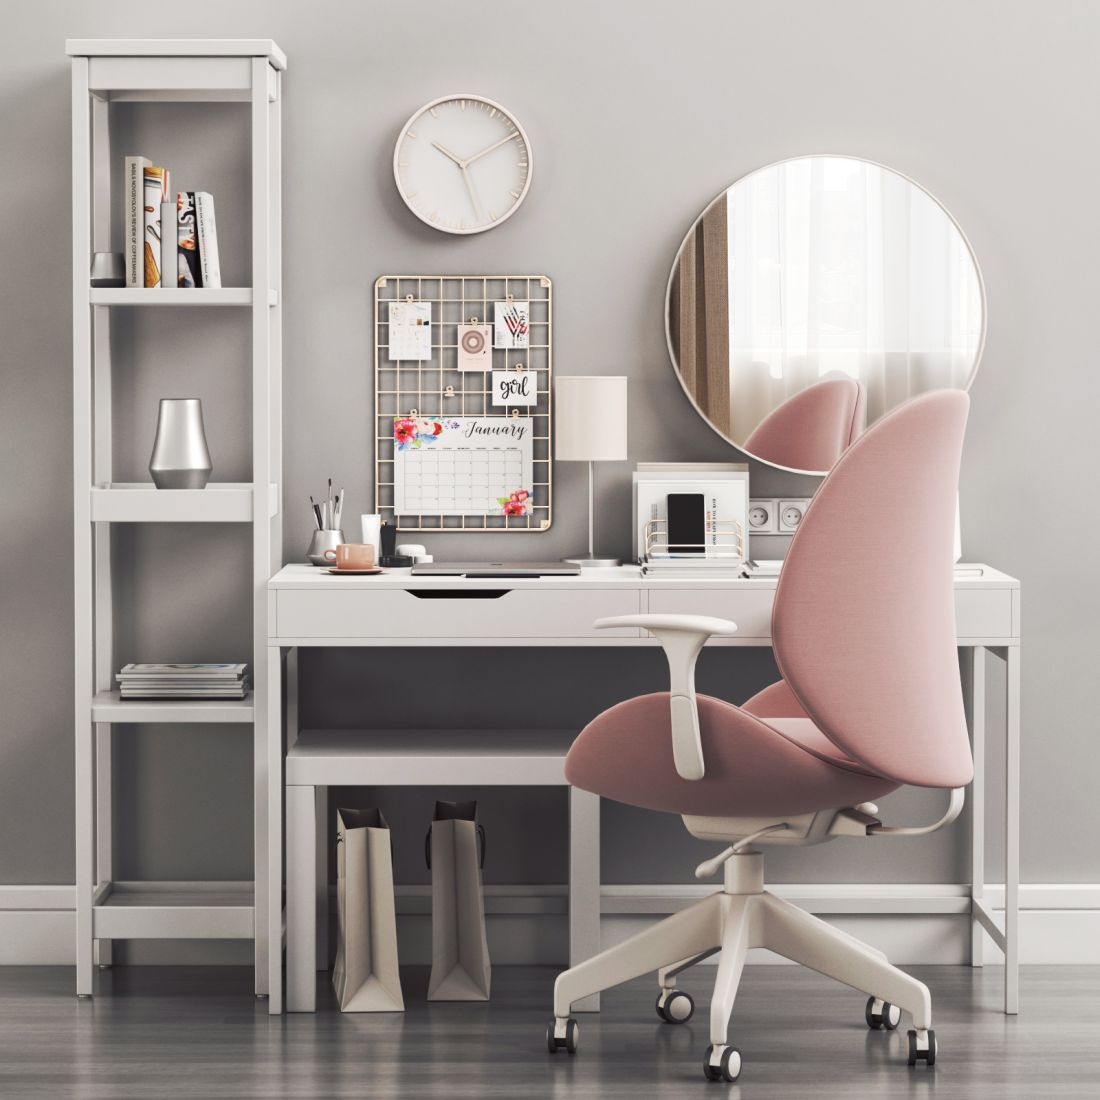 Women S Dressing Table And Workplace 3d Model For Vray Corona